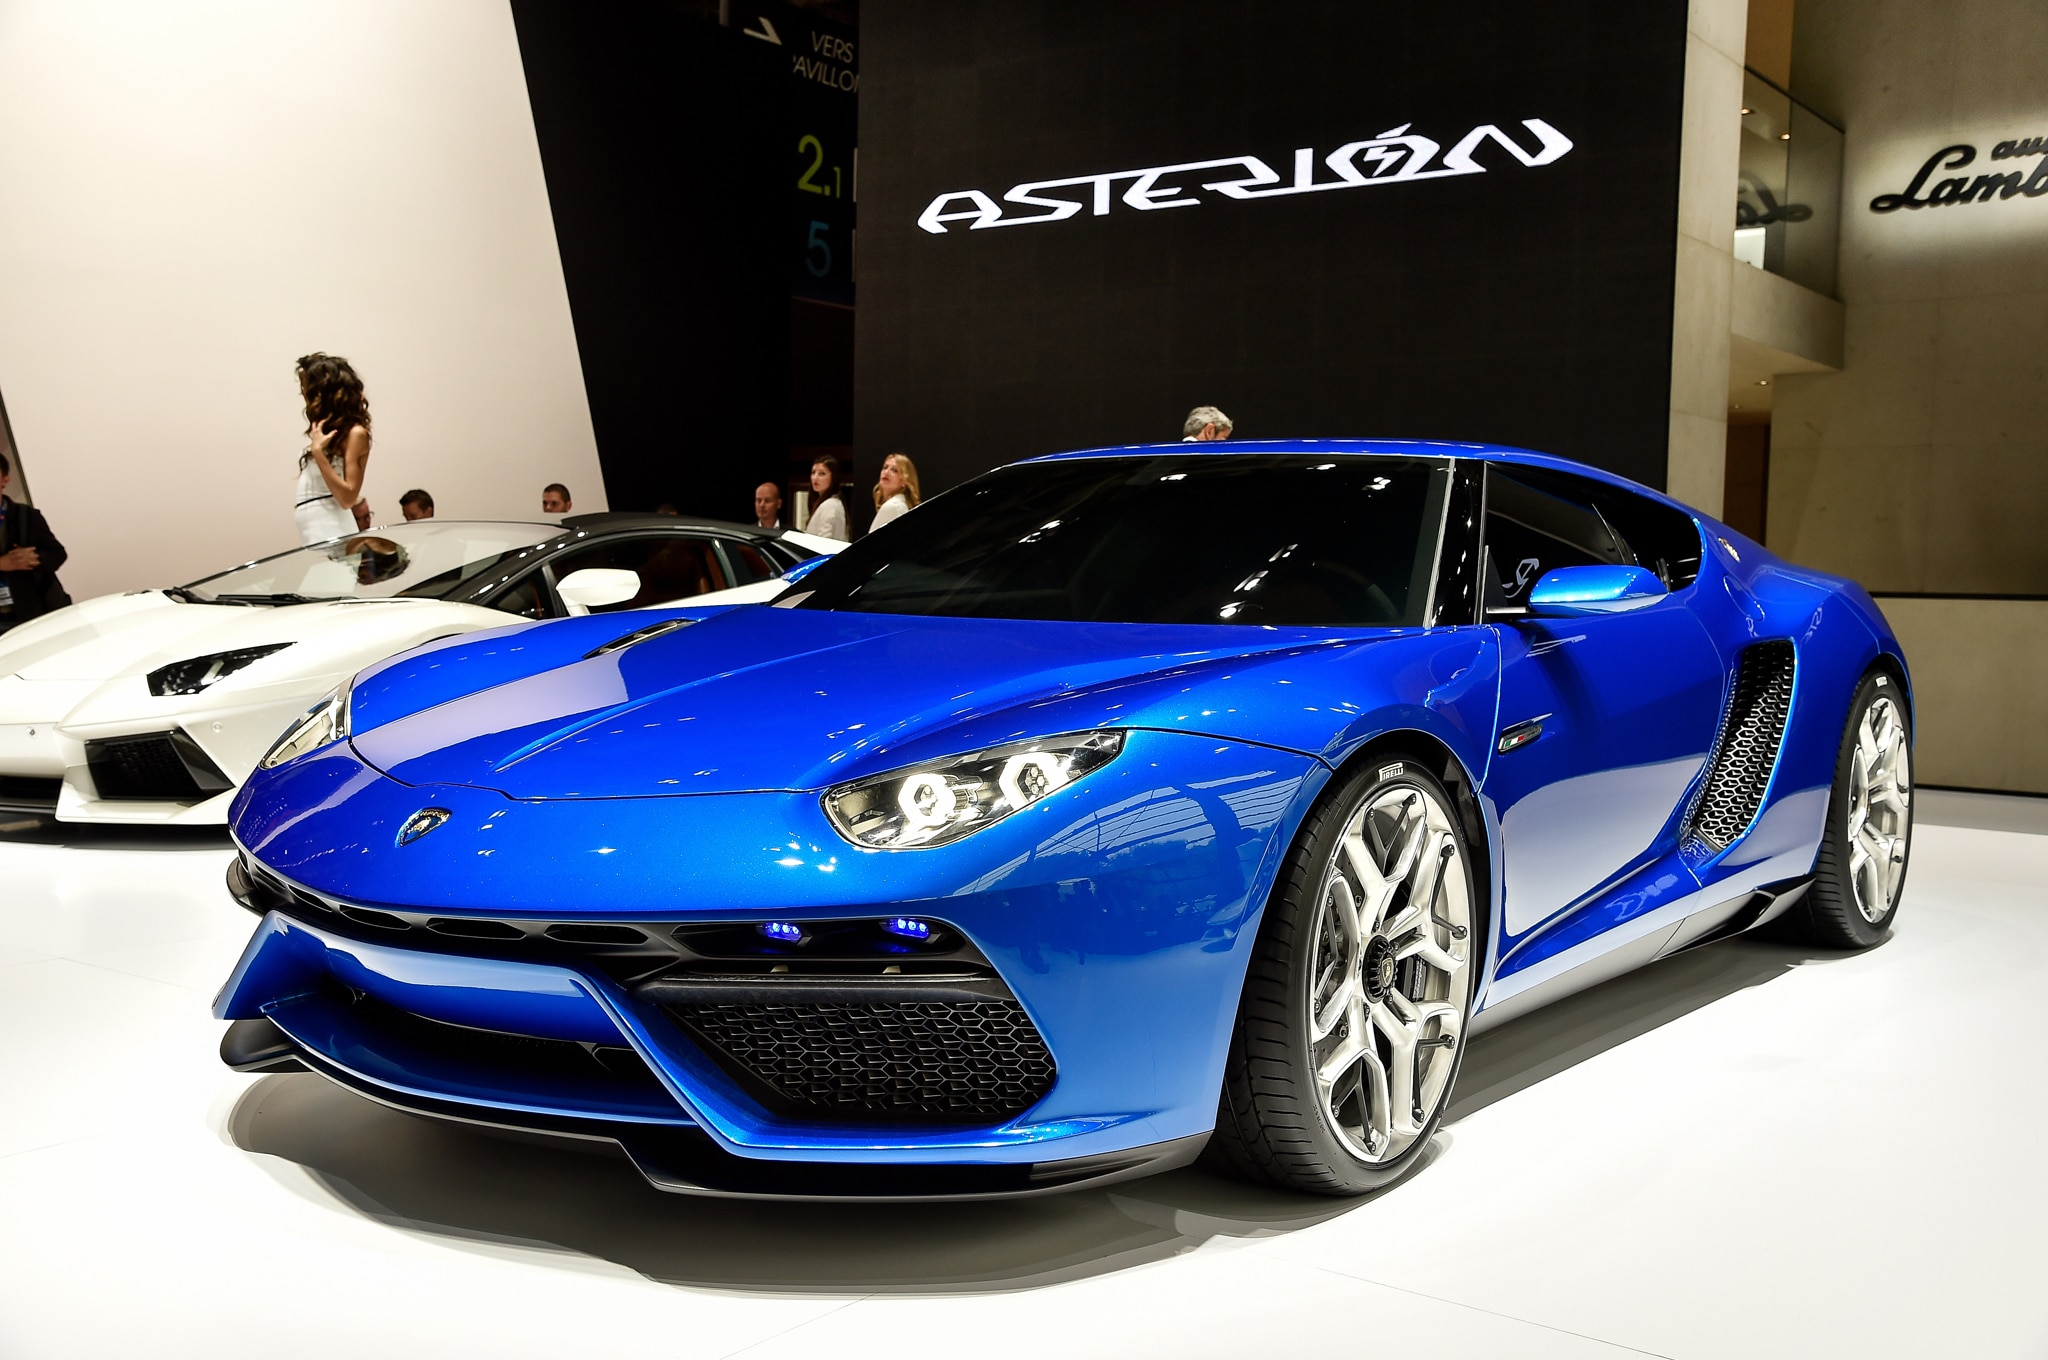 lamborghini 2016 concept. back in 2014 lamborghini did show off a hybrid supercar concept called the asterion shown above it made combined 897 hp could hit 60 mph less than 2016